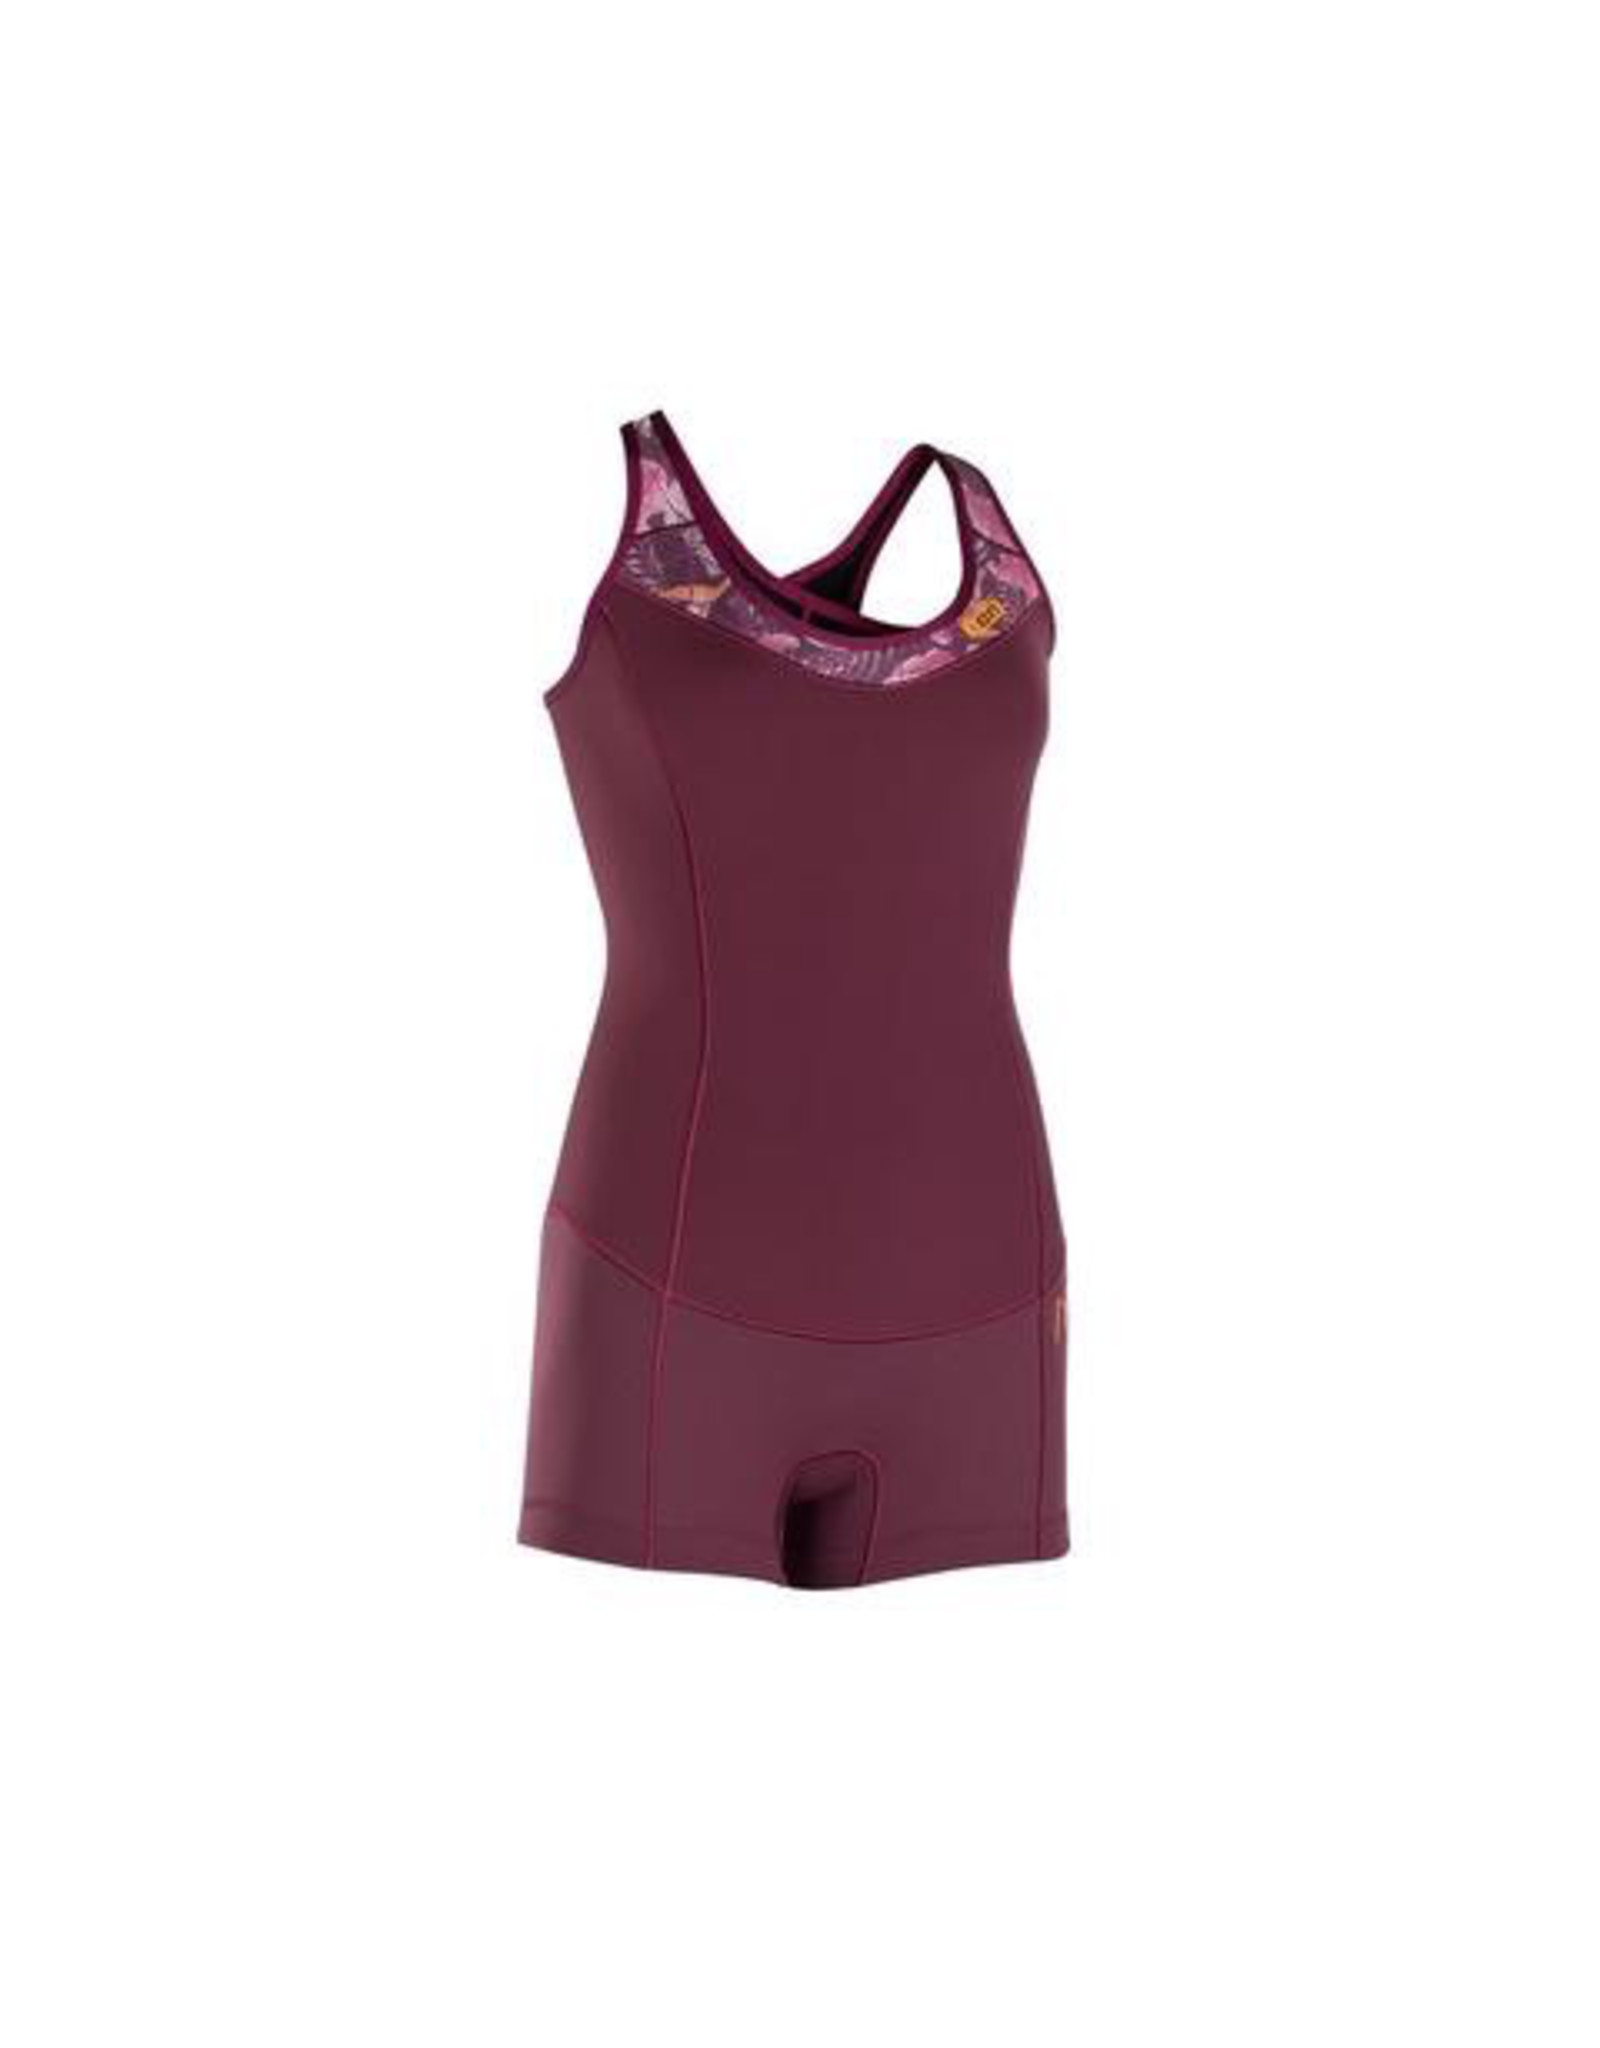 ION ION - 1,5mm - Muse Shorty Crossback dark berry, 34/XS(157-164cm)